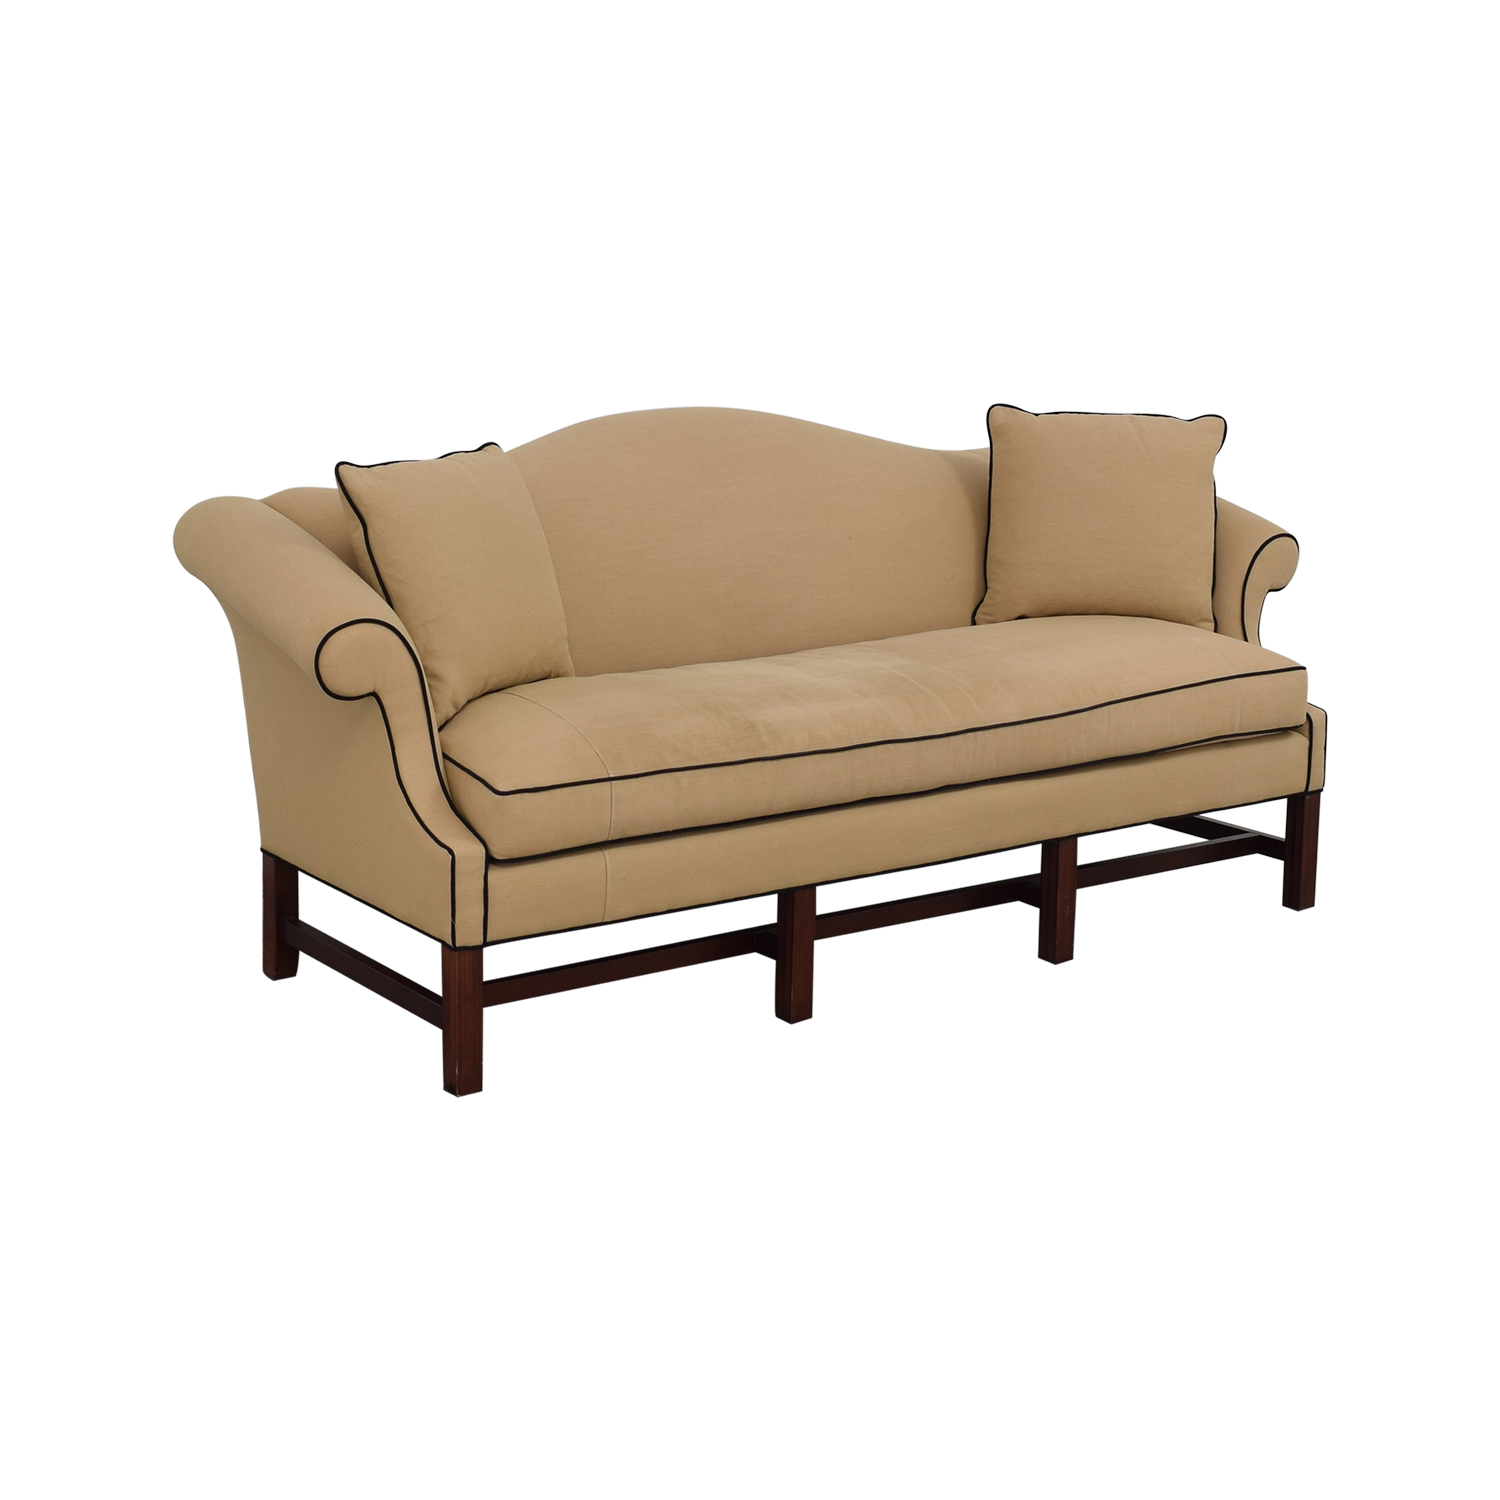 Upholstered Camel Back Sofa on sale